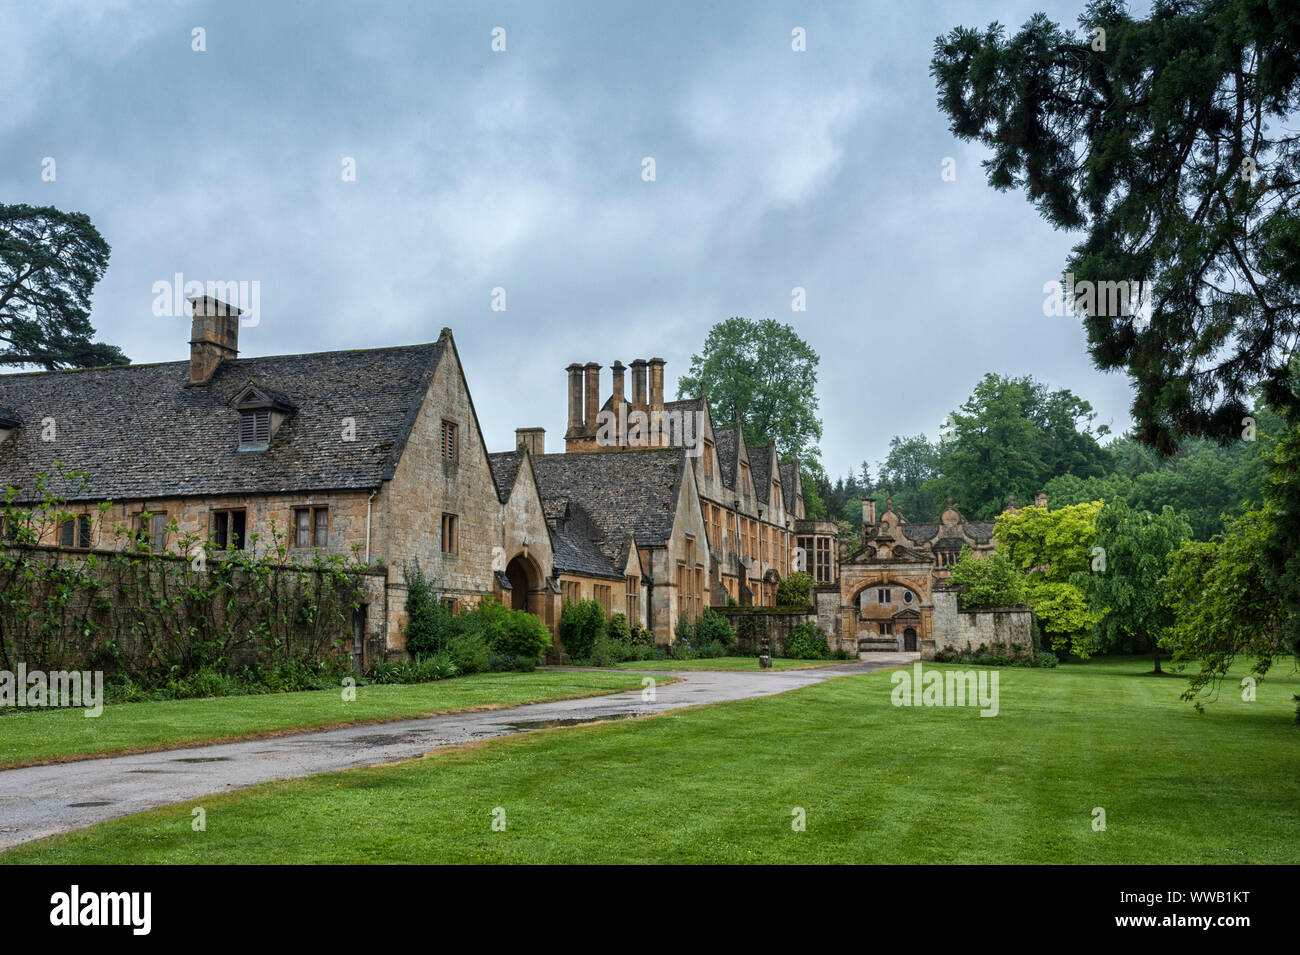 Stanway Manor House built in Jacobean period architecture 1630 in guiting yellow stone, in the Cotswold village of Stanway, Gloucestershire, Cotswolds Stock Photo